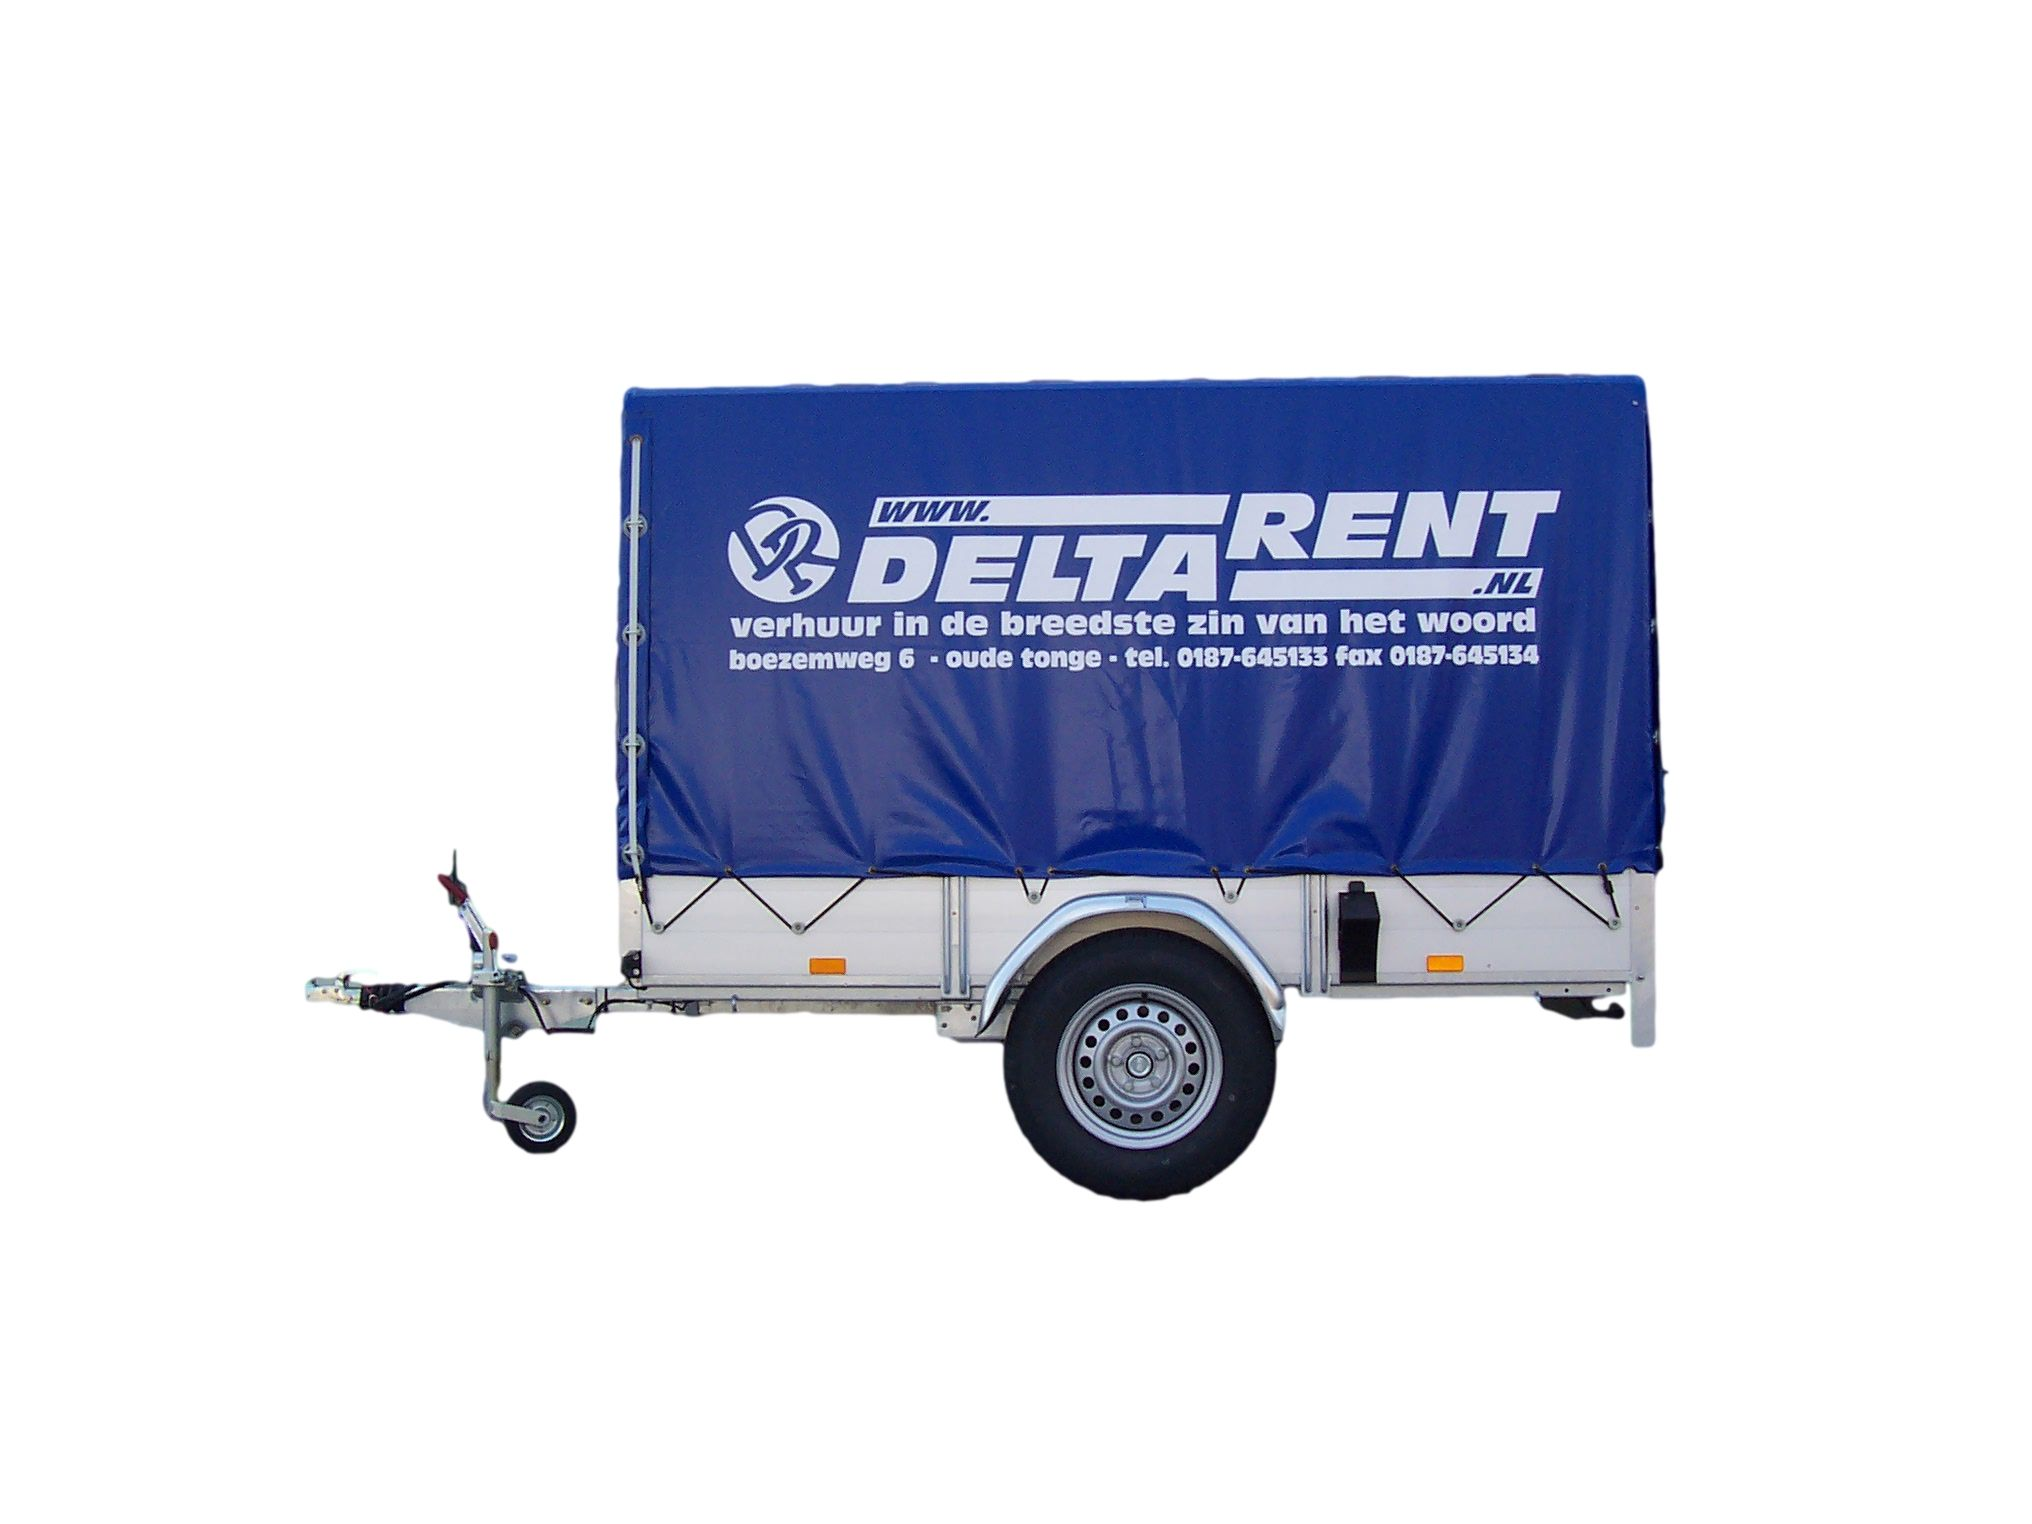 Huif Aanhangwagen Aanhangwagen Huif Transport Vehicles Vans Transportation